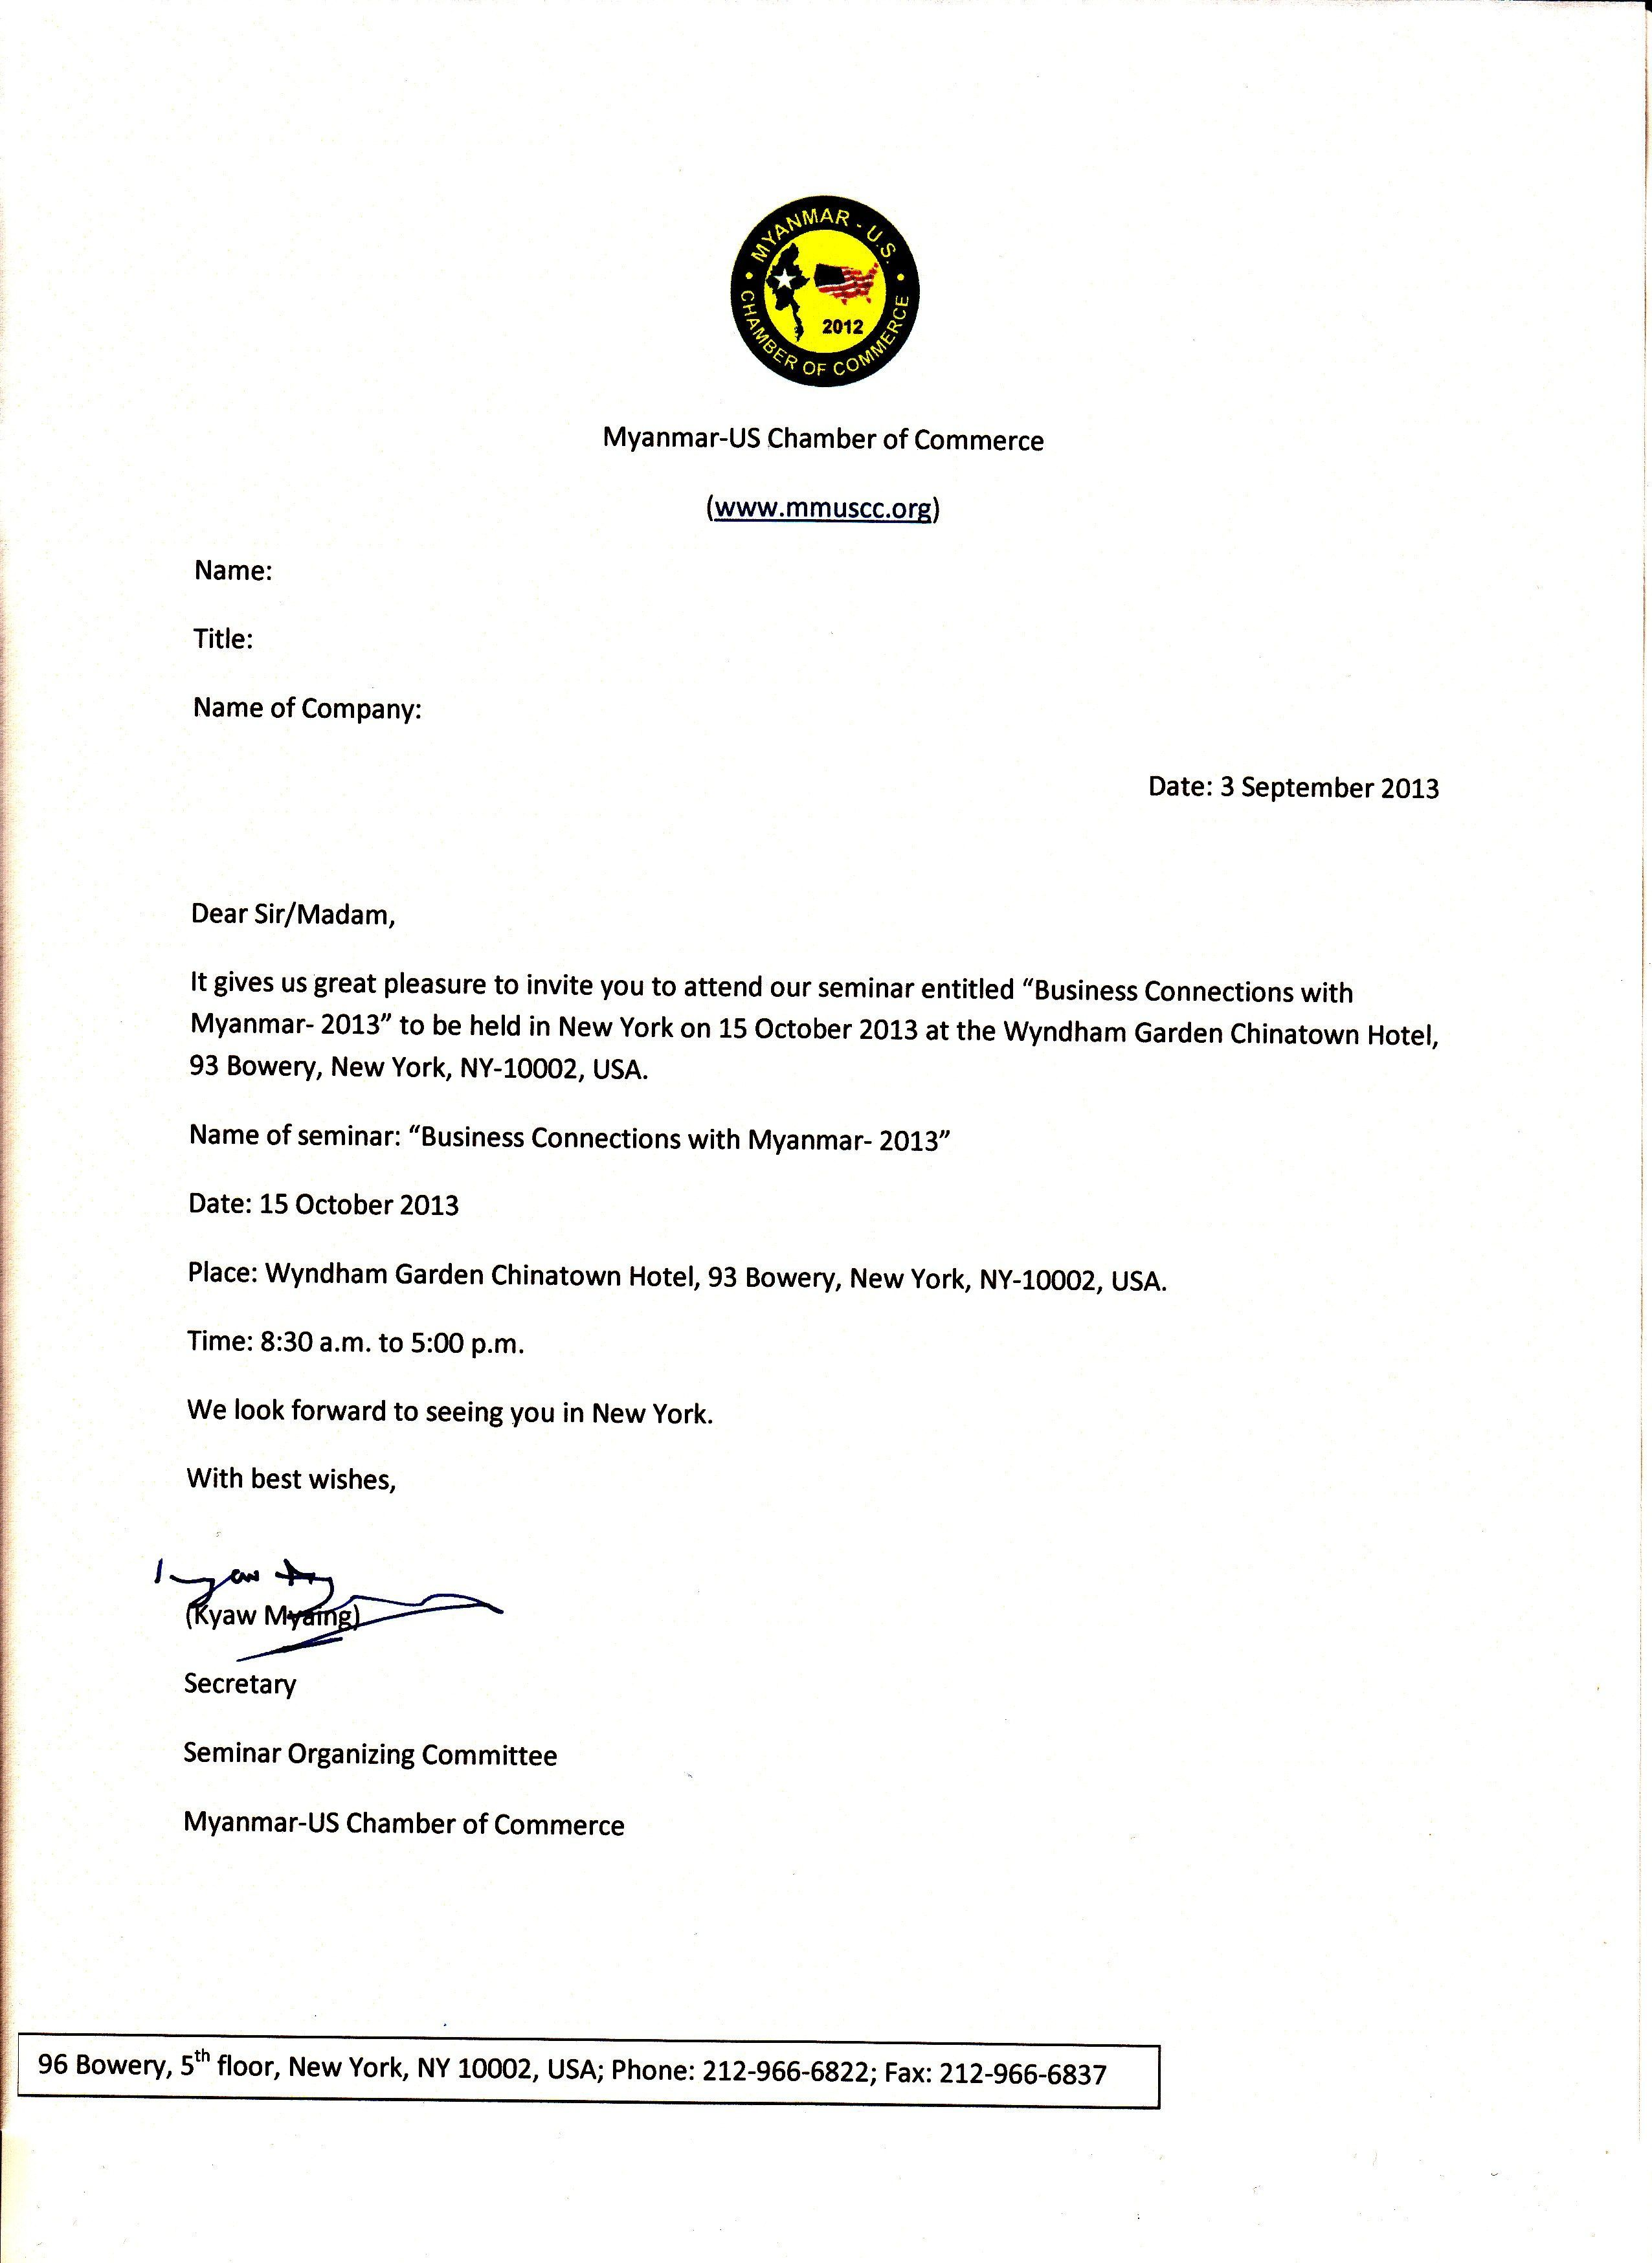 Pin by Anindia Praninda on Business letter (With images